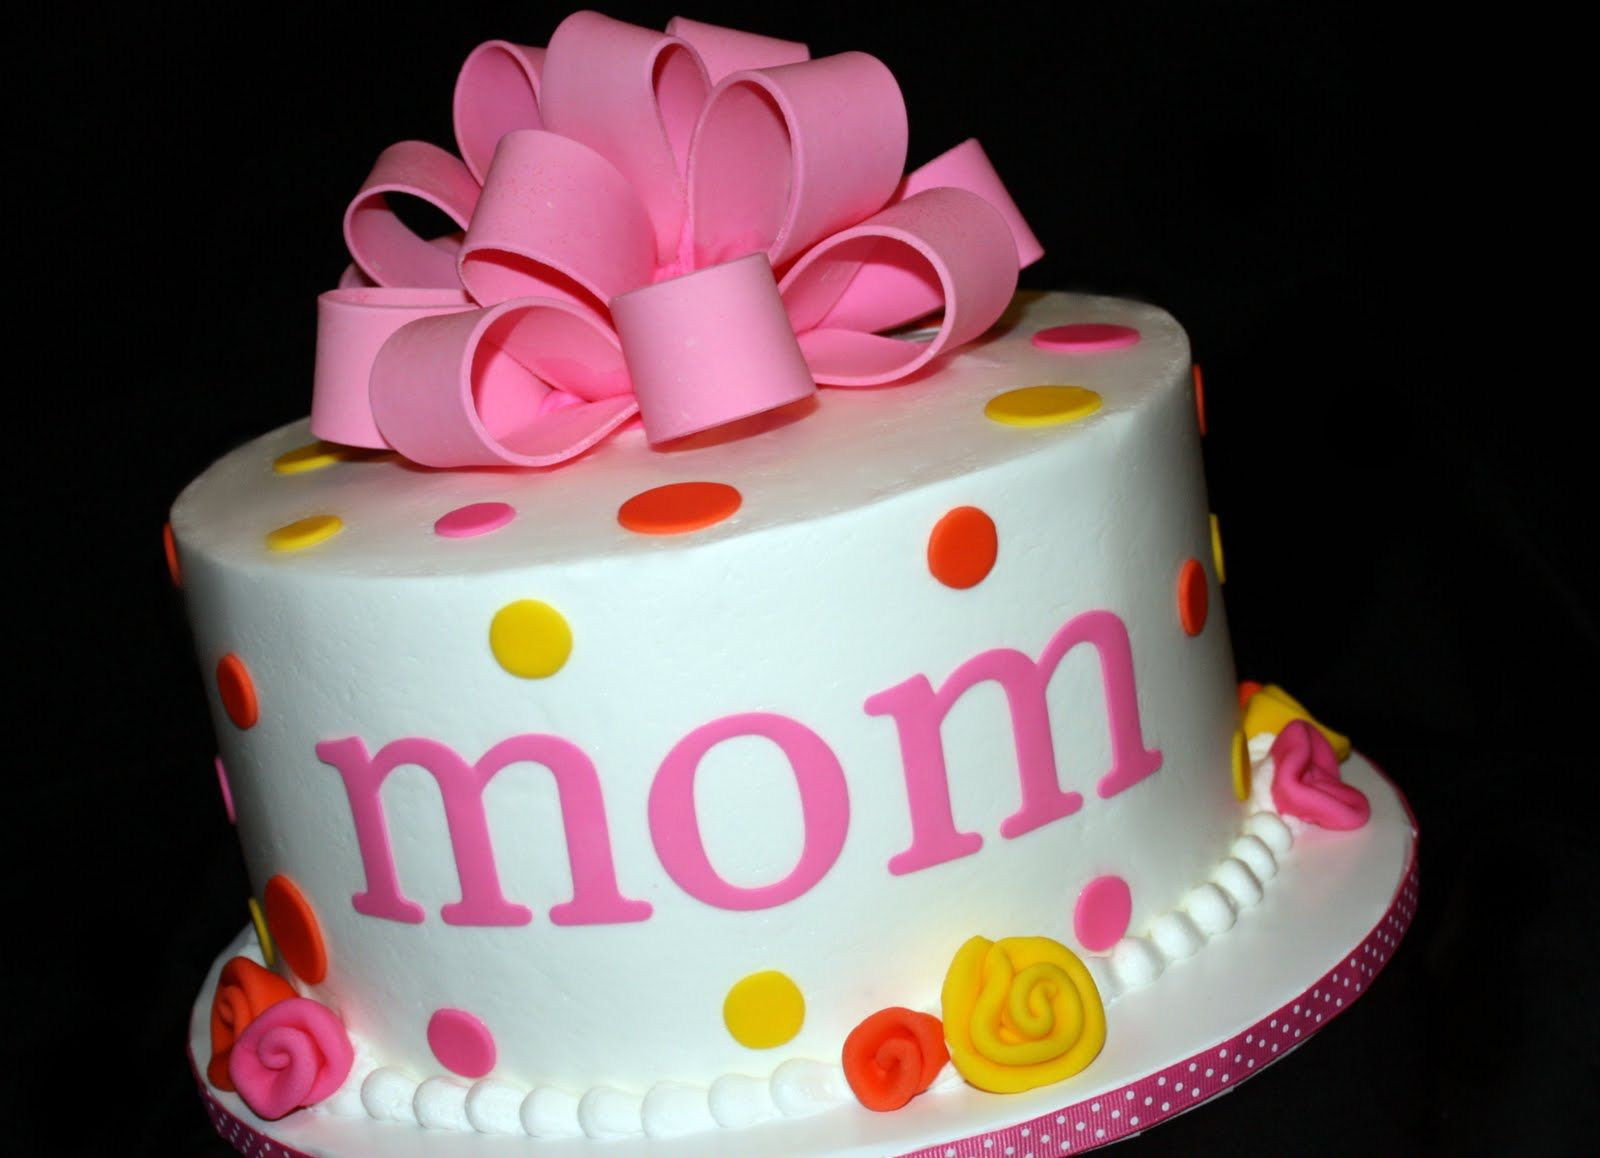 Cake Decorations For Mother S Birthday : fun cakes Mom Birthday Cake fun cakes Pinterest ...